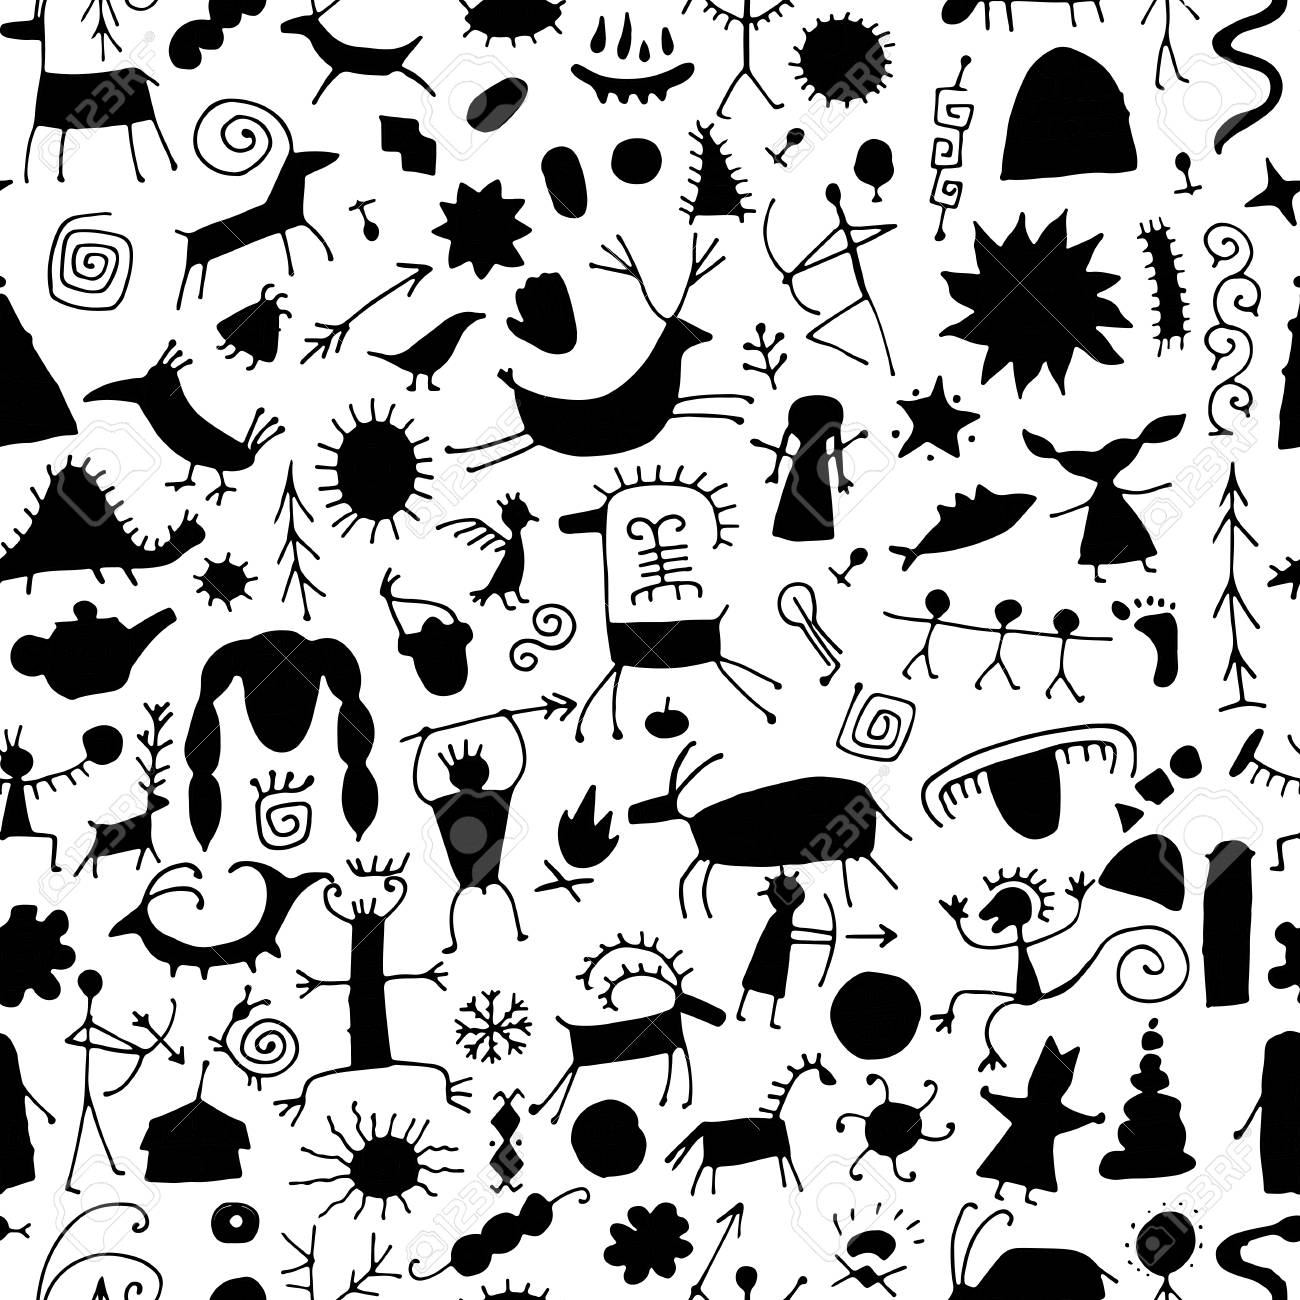 Rock paintings background, seamless pattern for your design - 120866338